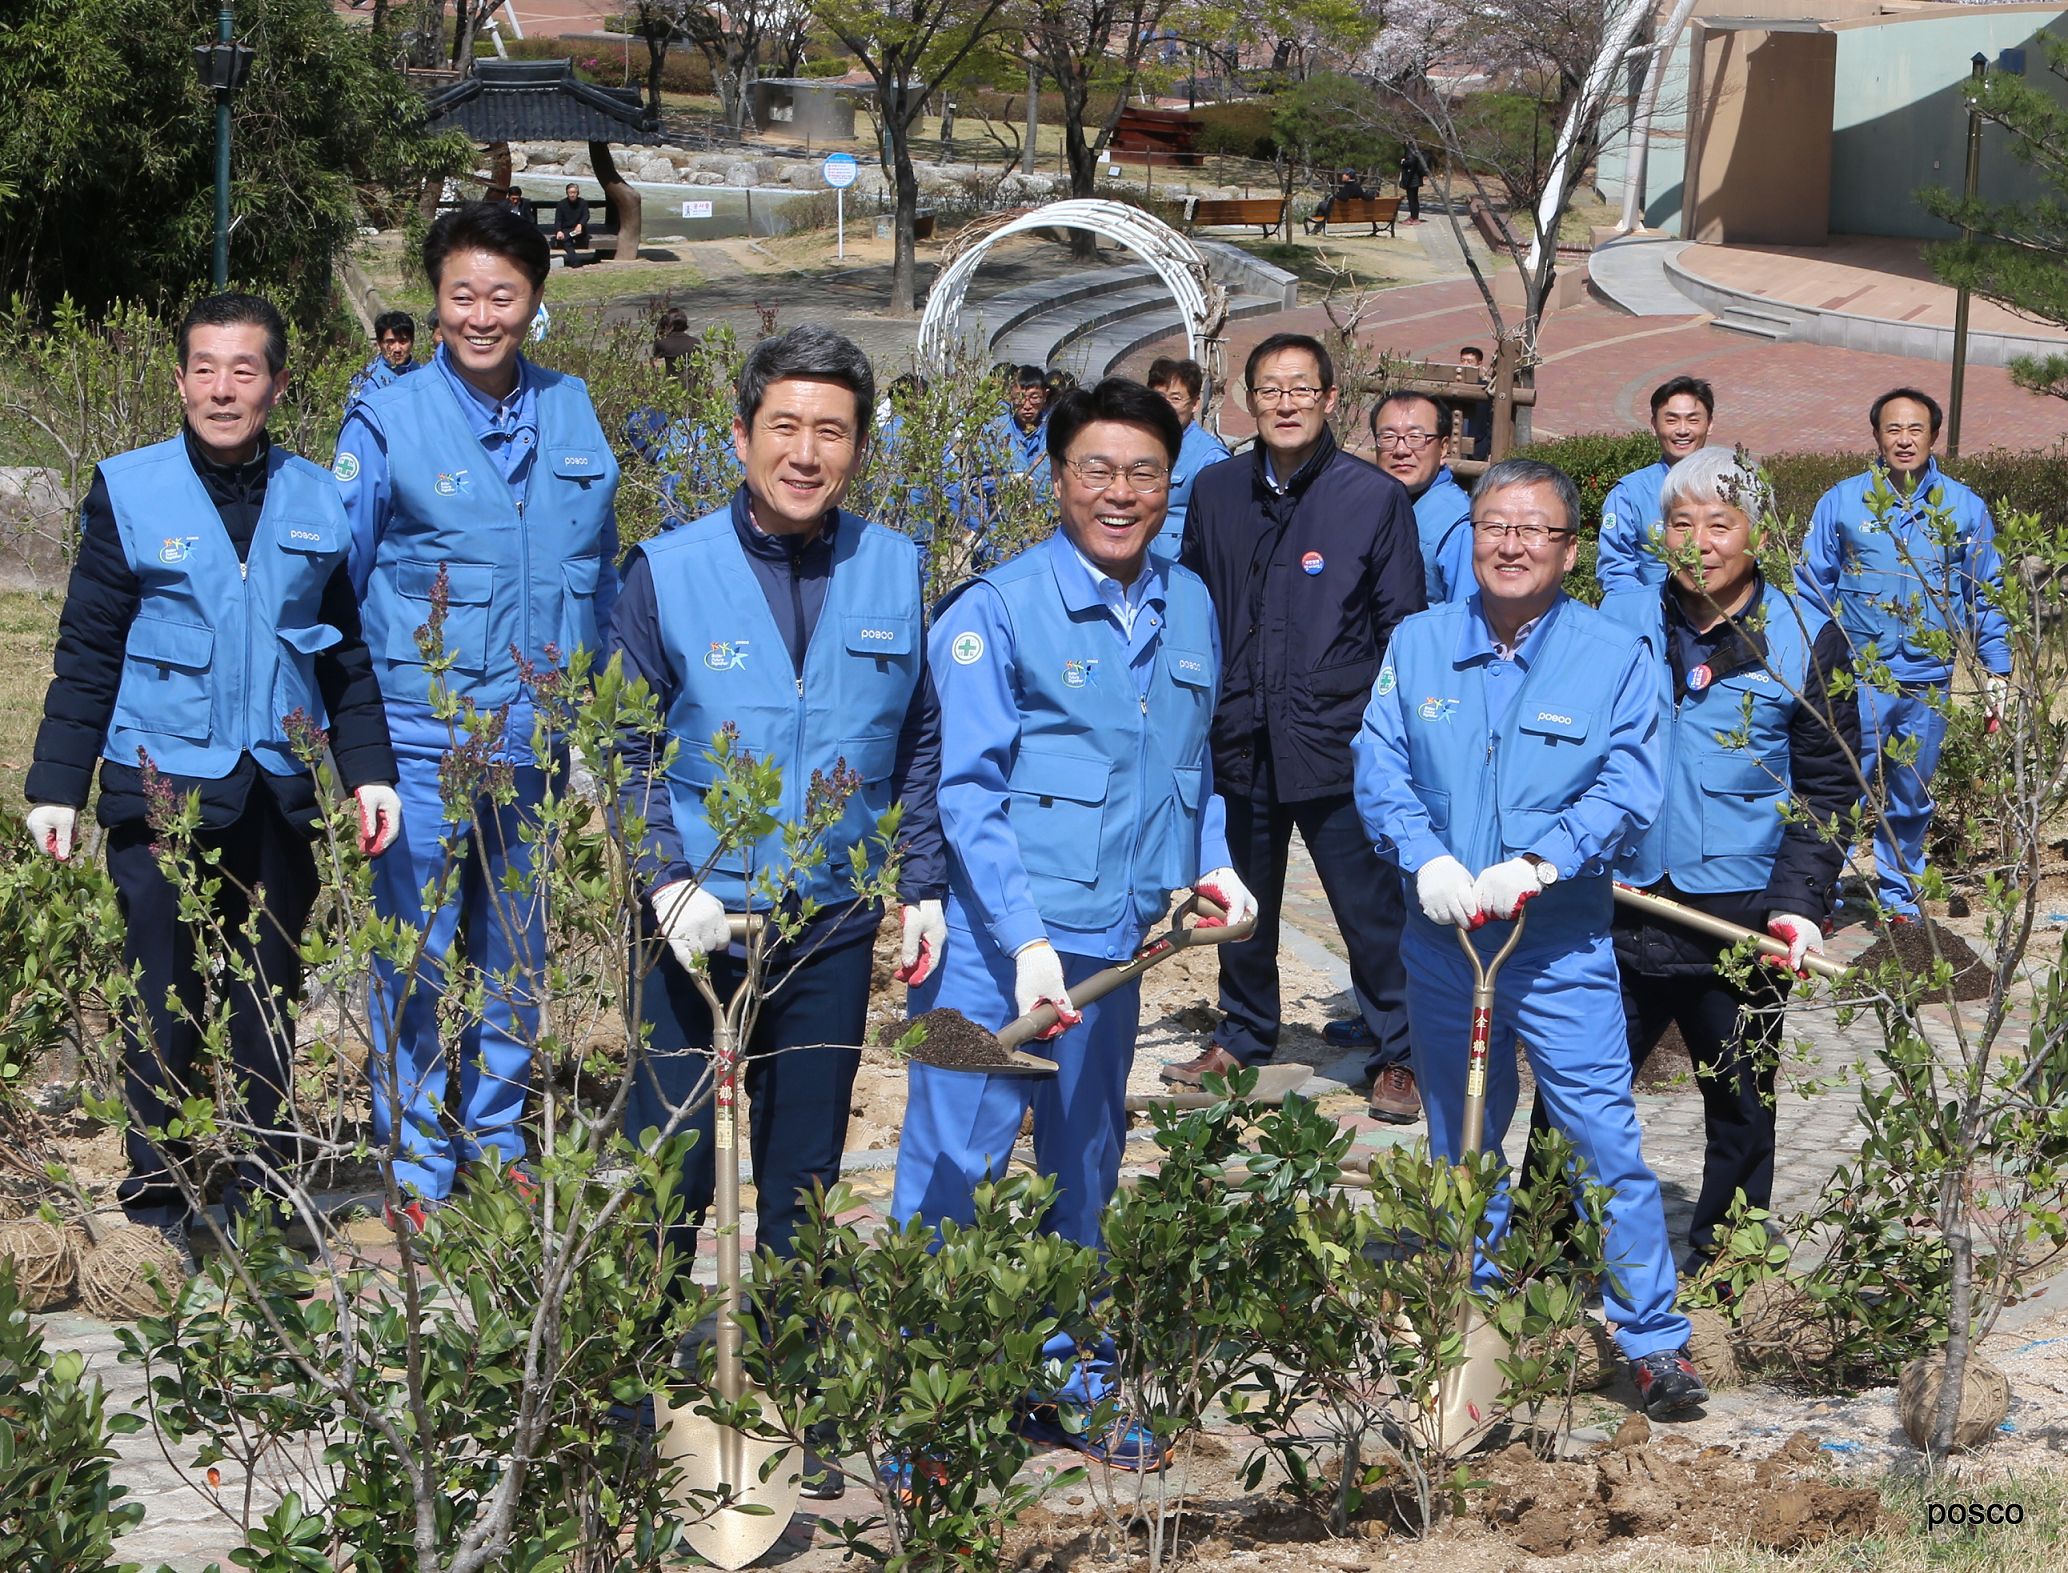 POSCO CEO Jeong-Woo Choi (fourth from the left) is planting trees on the company's Foundation Day, along with the Pohang Mayor Kang-Deok Lee (third from the left) and the POSCO employees.